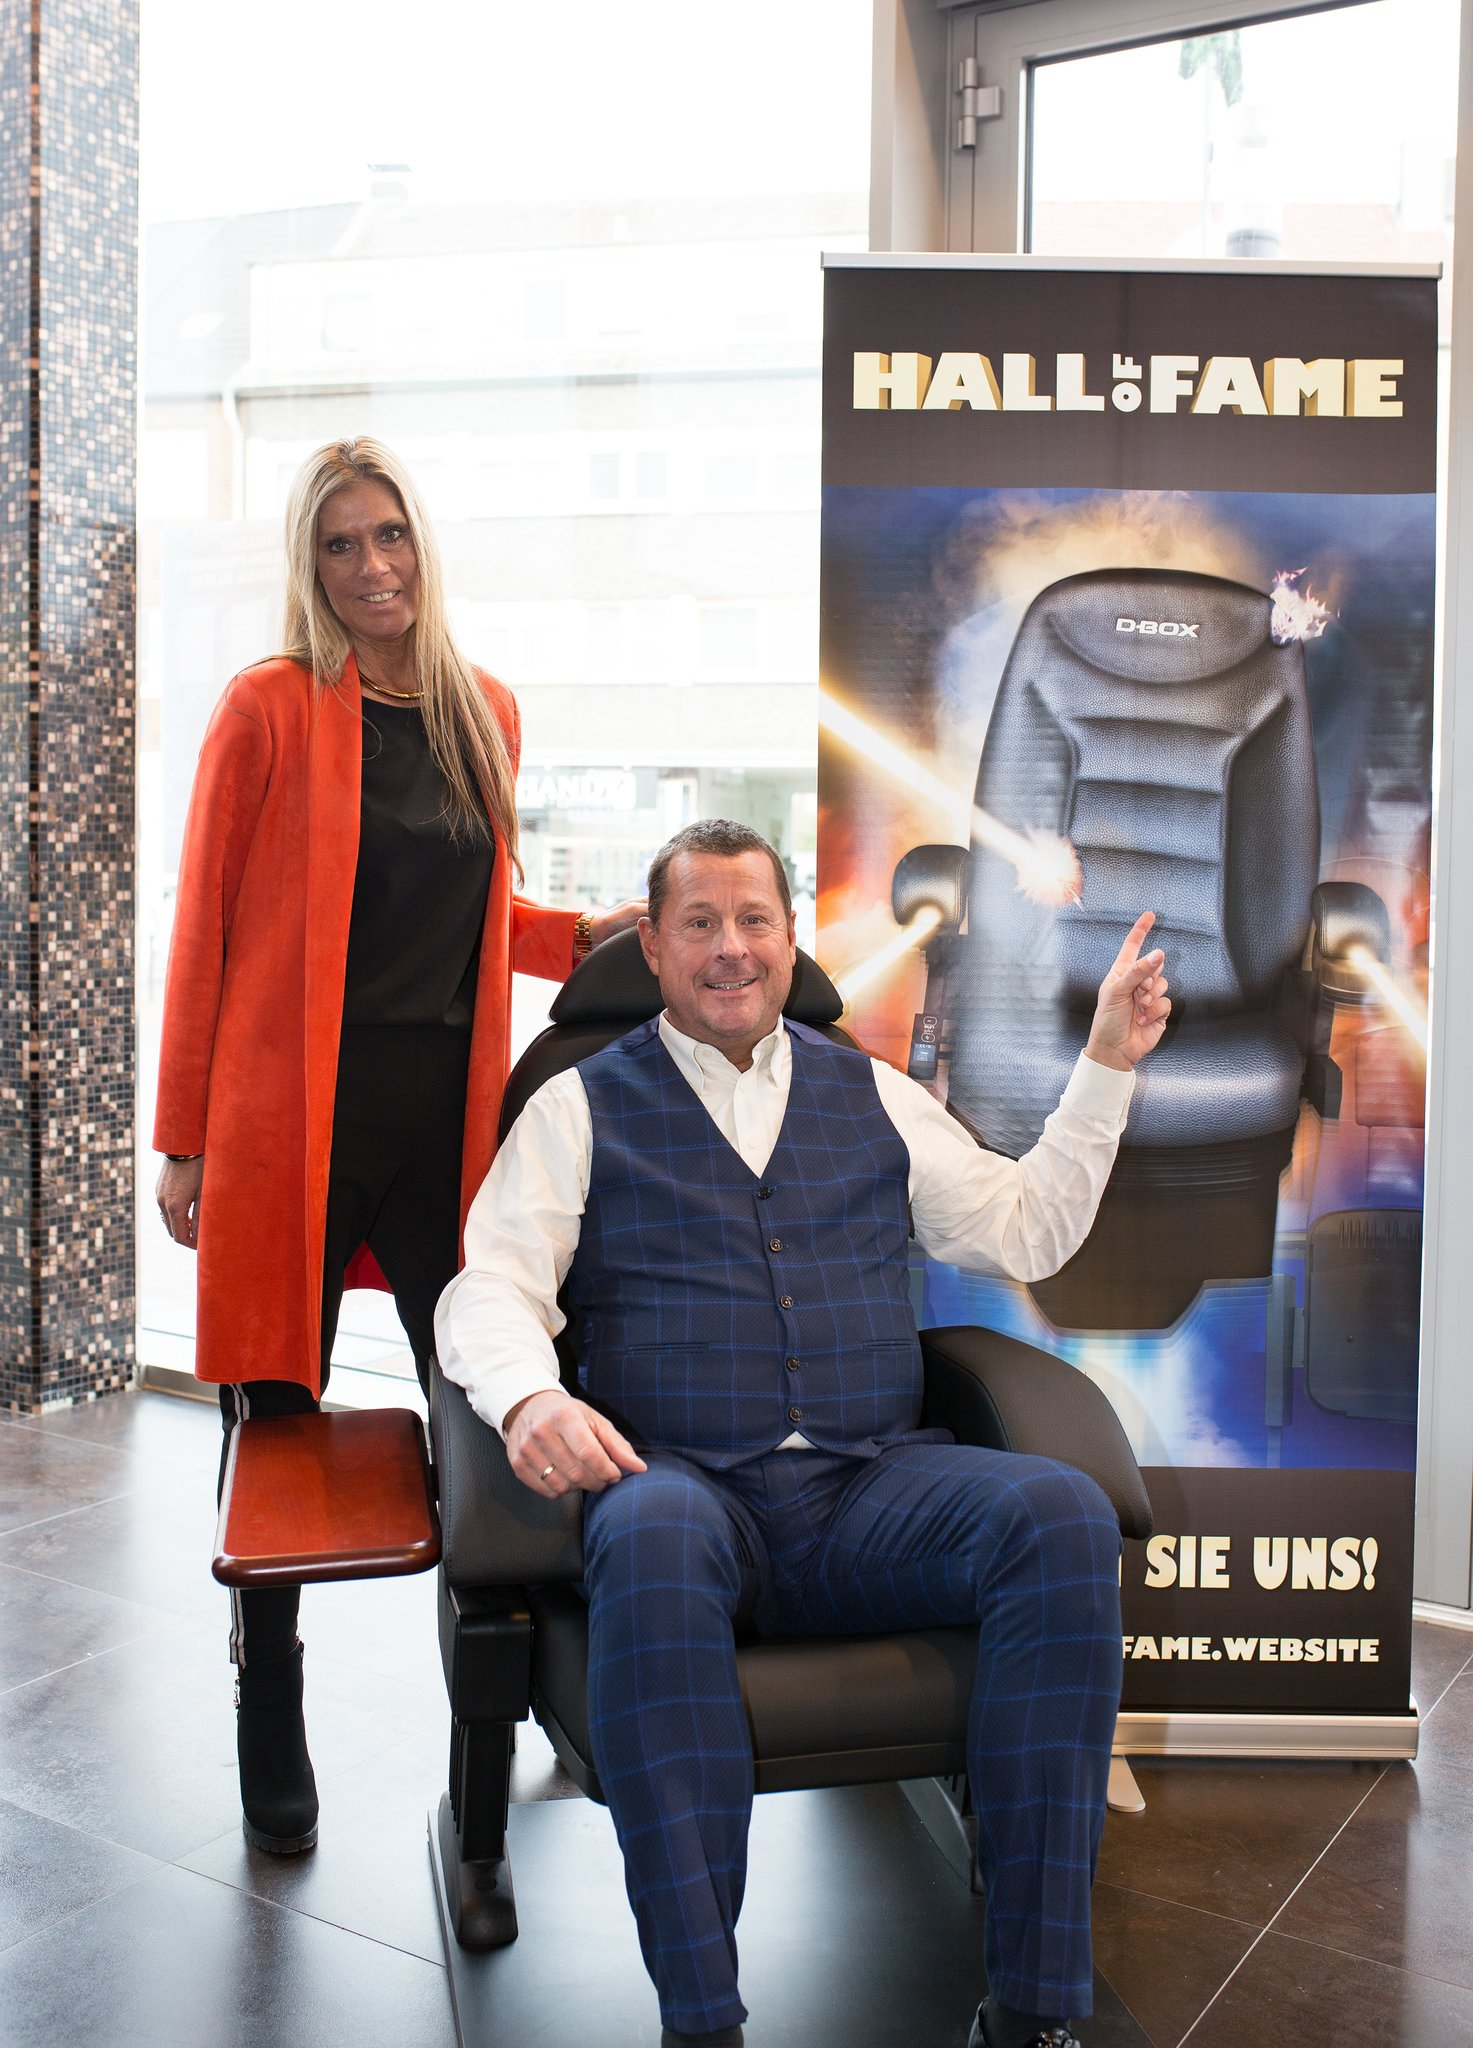 Hall of fame kamp lintfort